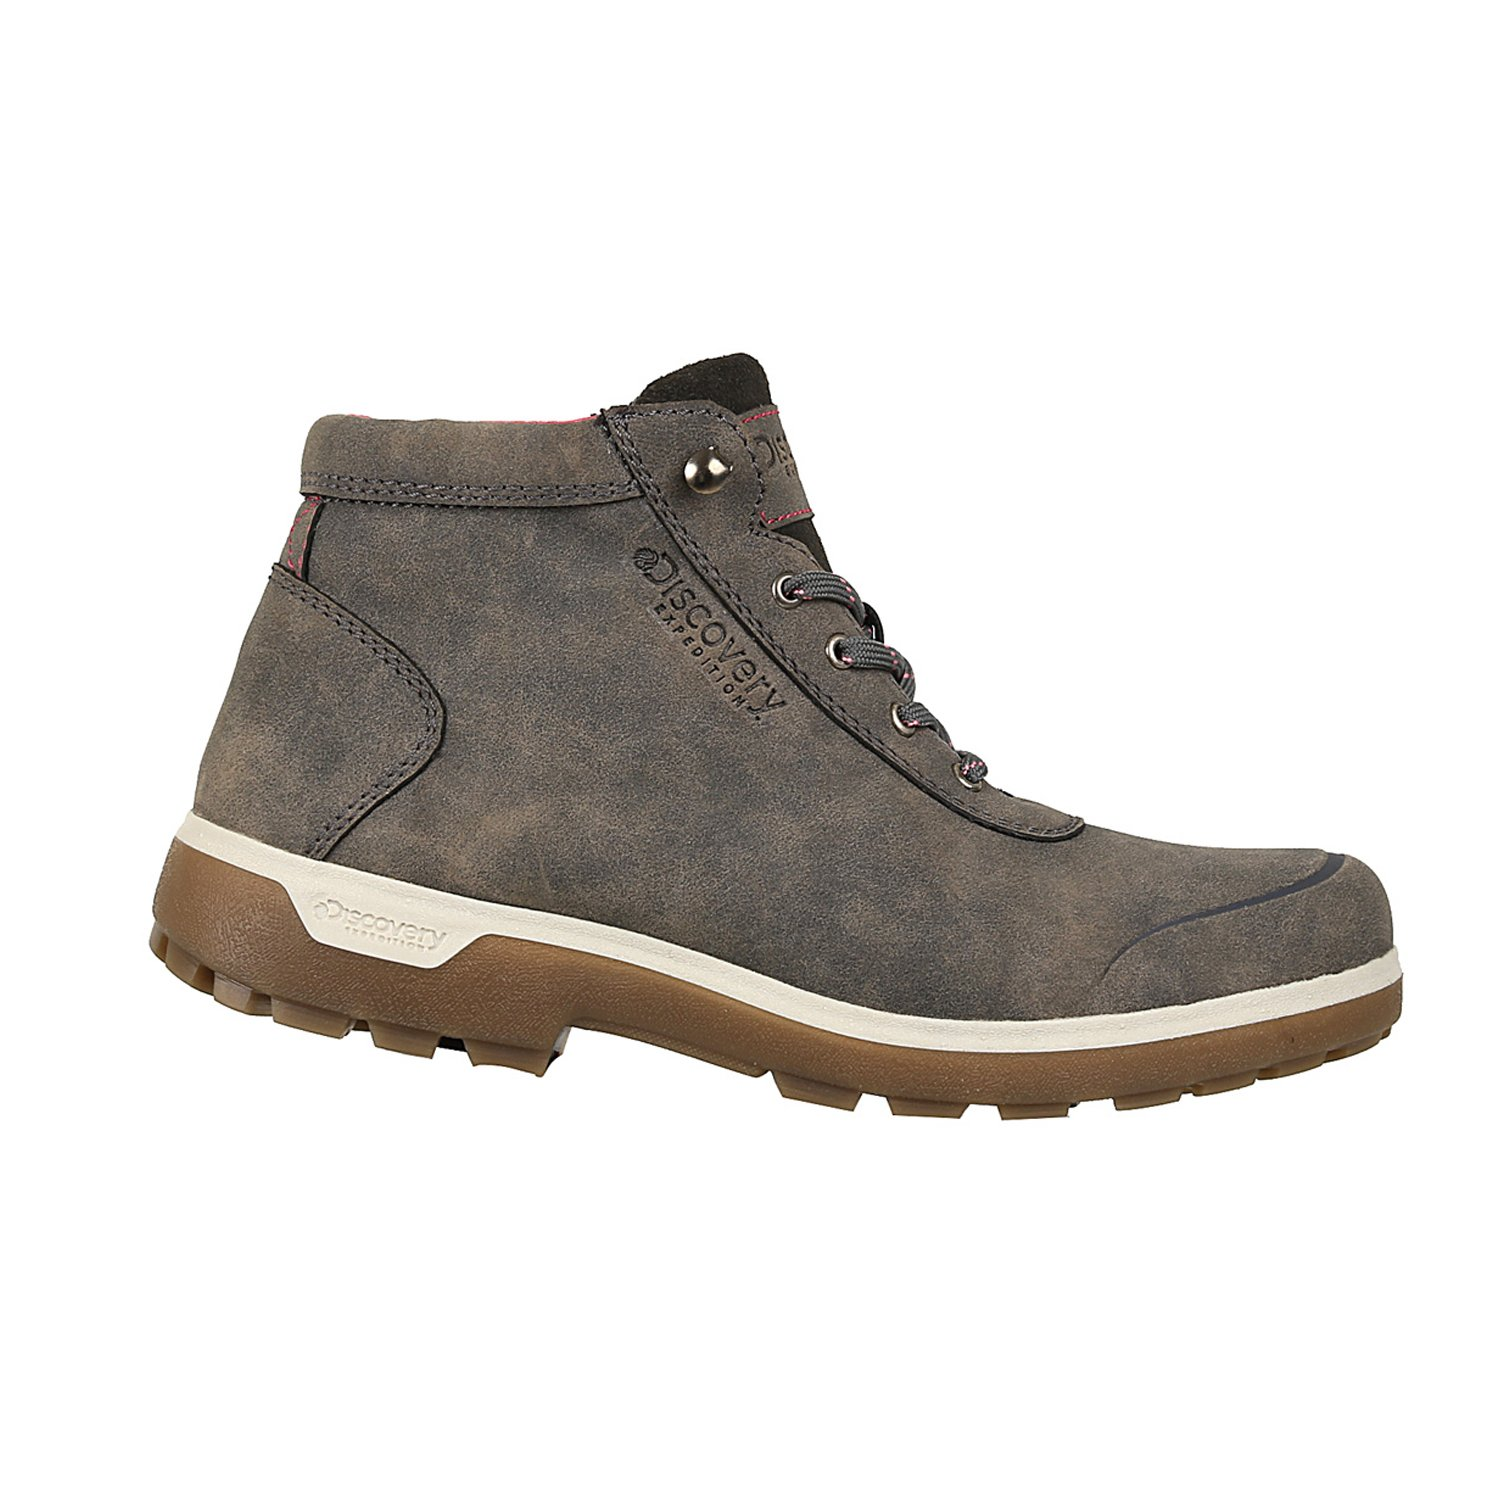 Discovery Expedition Women's Adventure Mid Hiking Boot Gun Metal Size 9.5